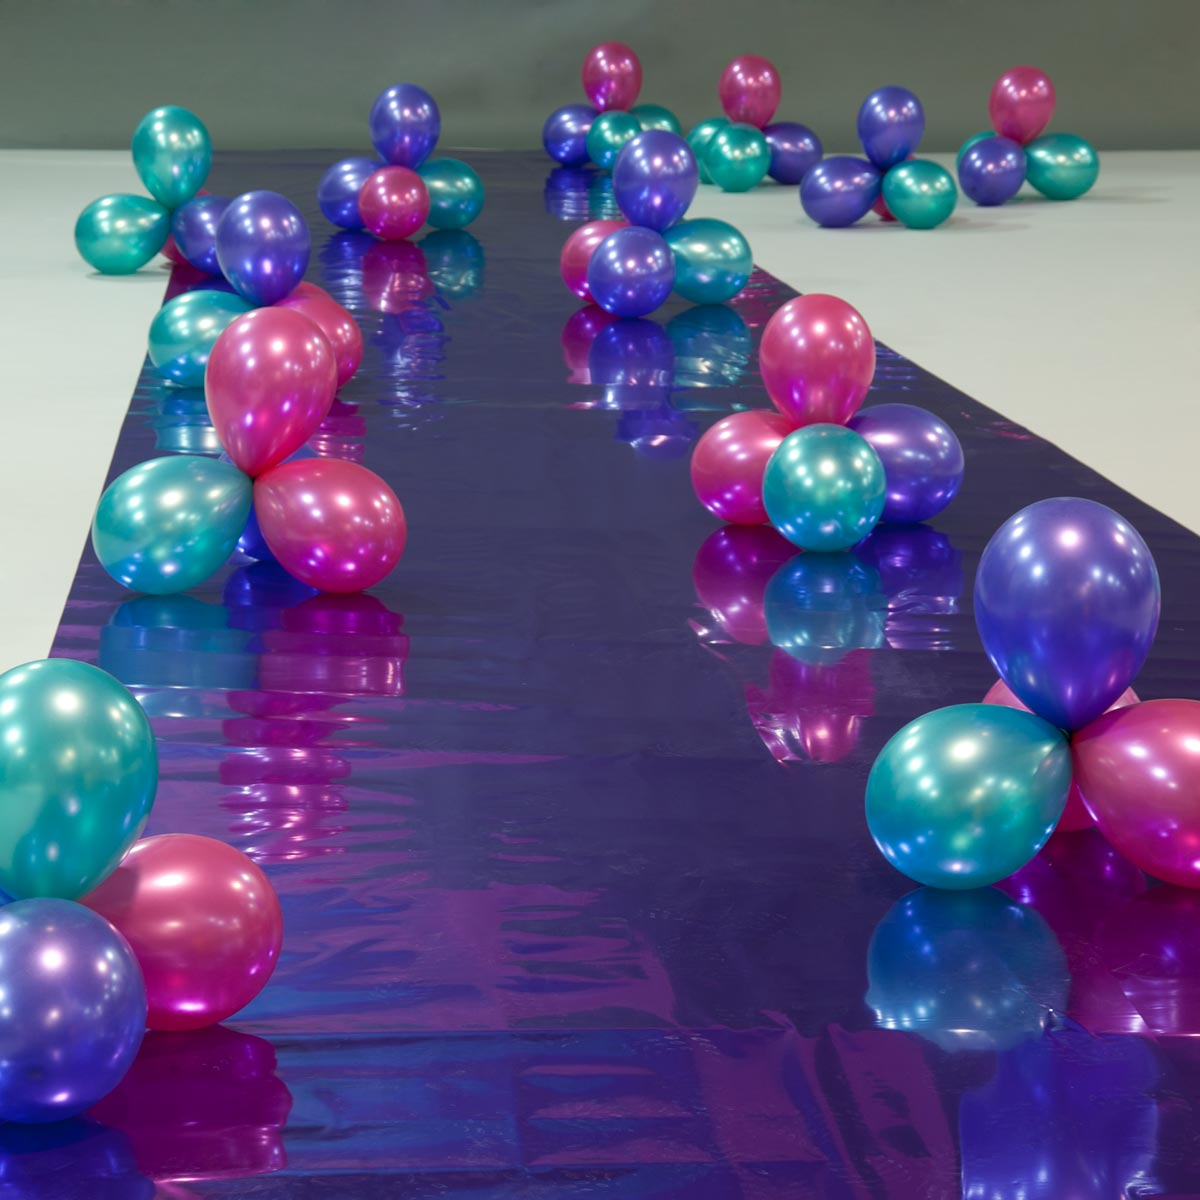 The Cosmic Way Path and Balloon Clusters Kit